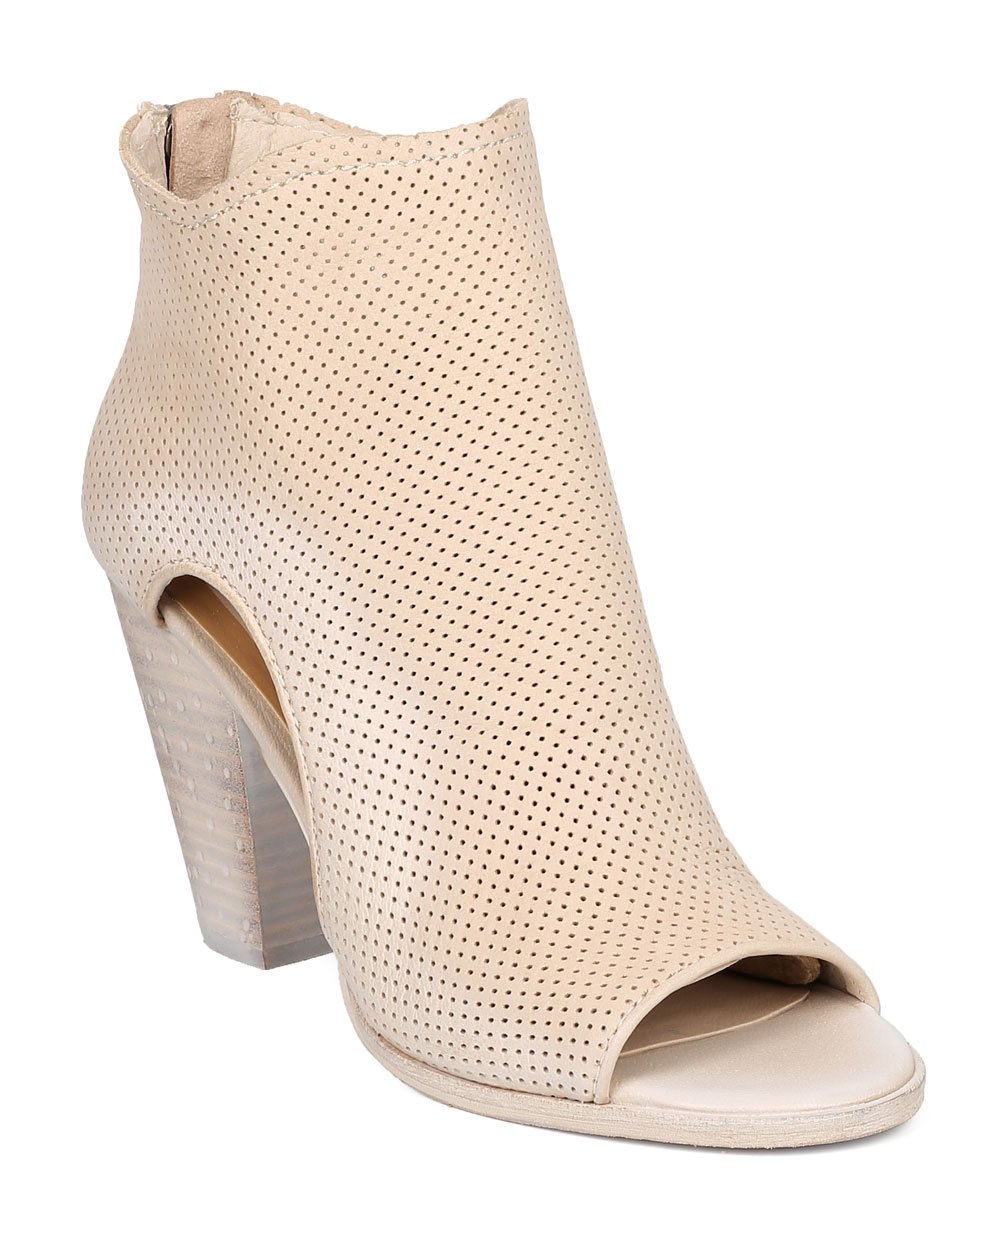 Dolce Vita Women Nubuck Perforated Chunky Heel Bootie - Casual, Versatile, Dressy - Cutout Ankle Boot - Harem by Sand (Size: 8.0)